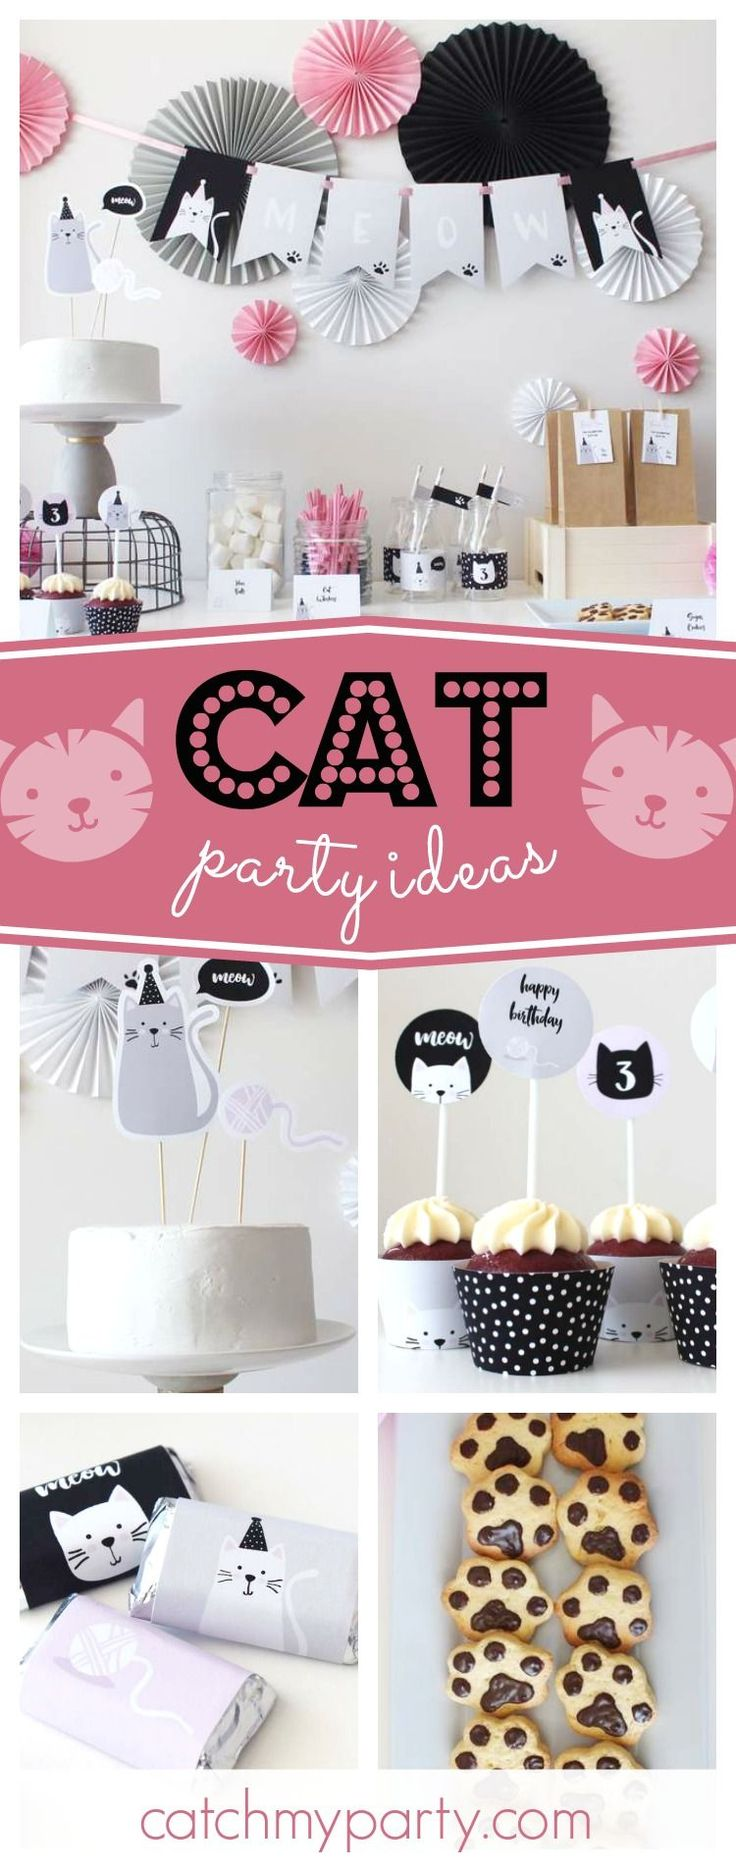 Don't miss this pur-fect modern cat birthday party! The paw cookies are adorable!! See more party ideas and share yours at CatchMyParty.com #cat #girlbirthday #CatParty